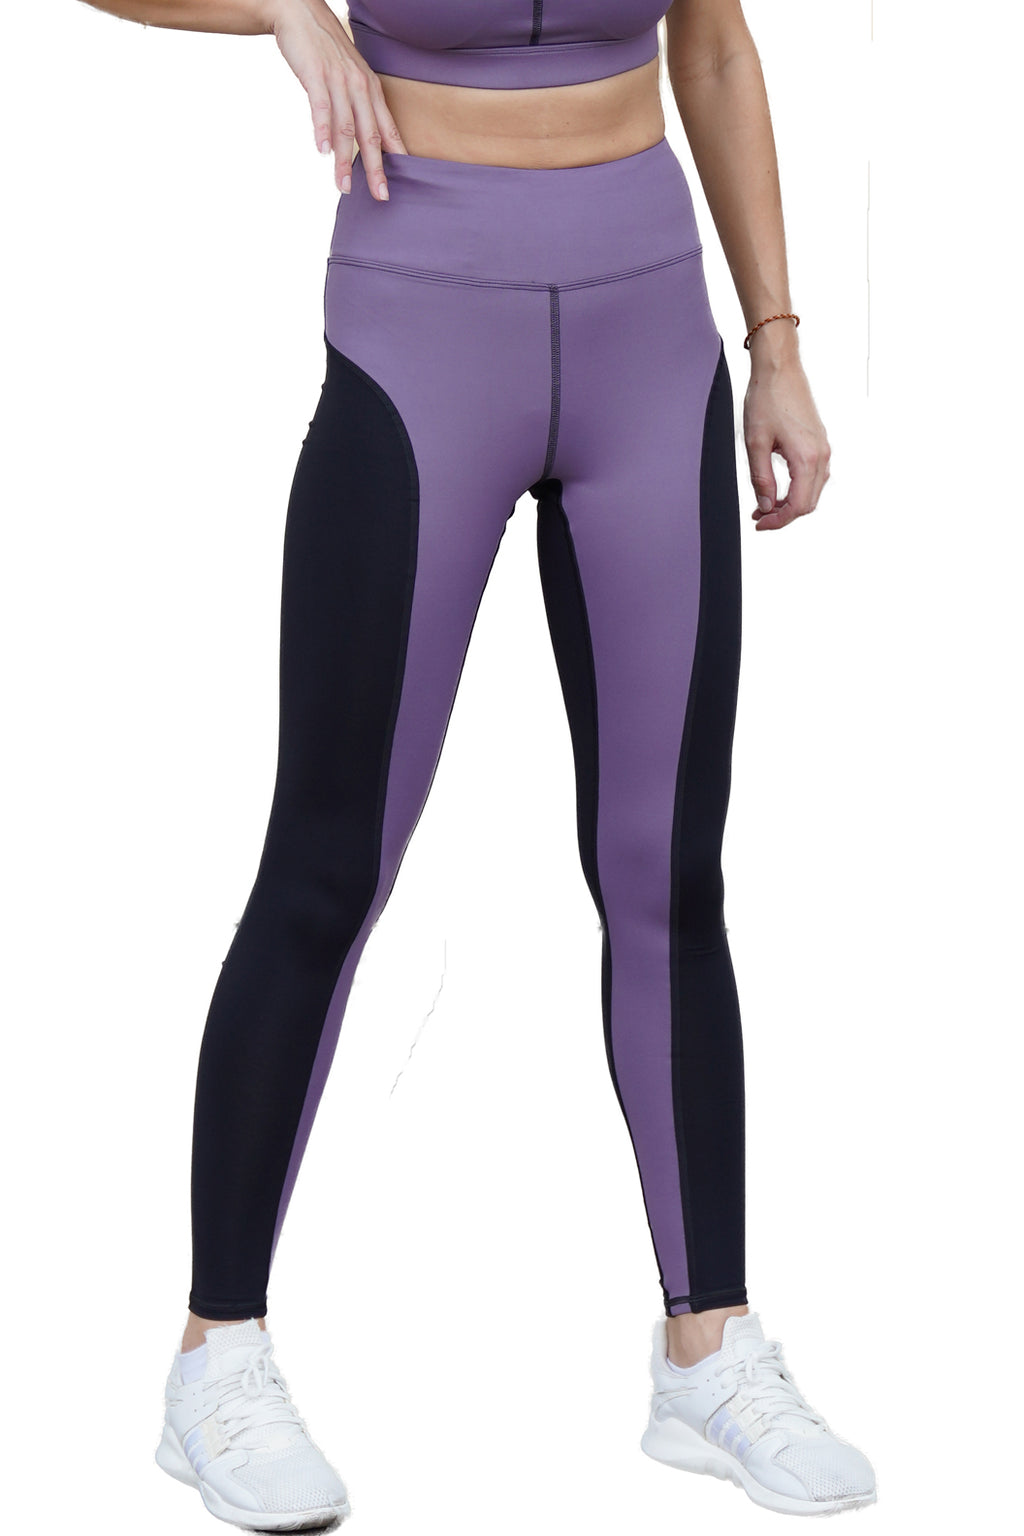 Guna High Waist Full Length Tight Leather Look Purple